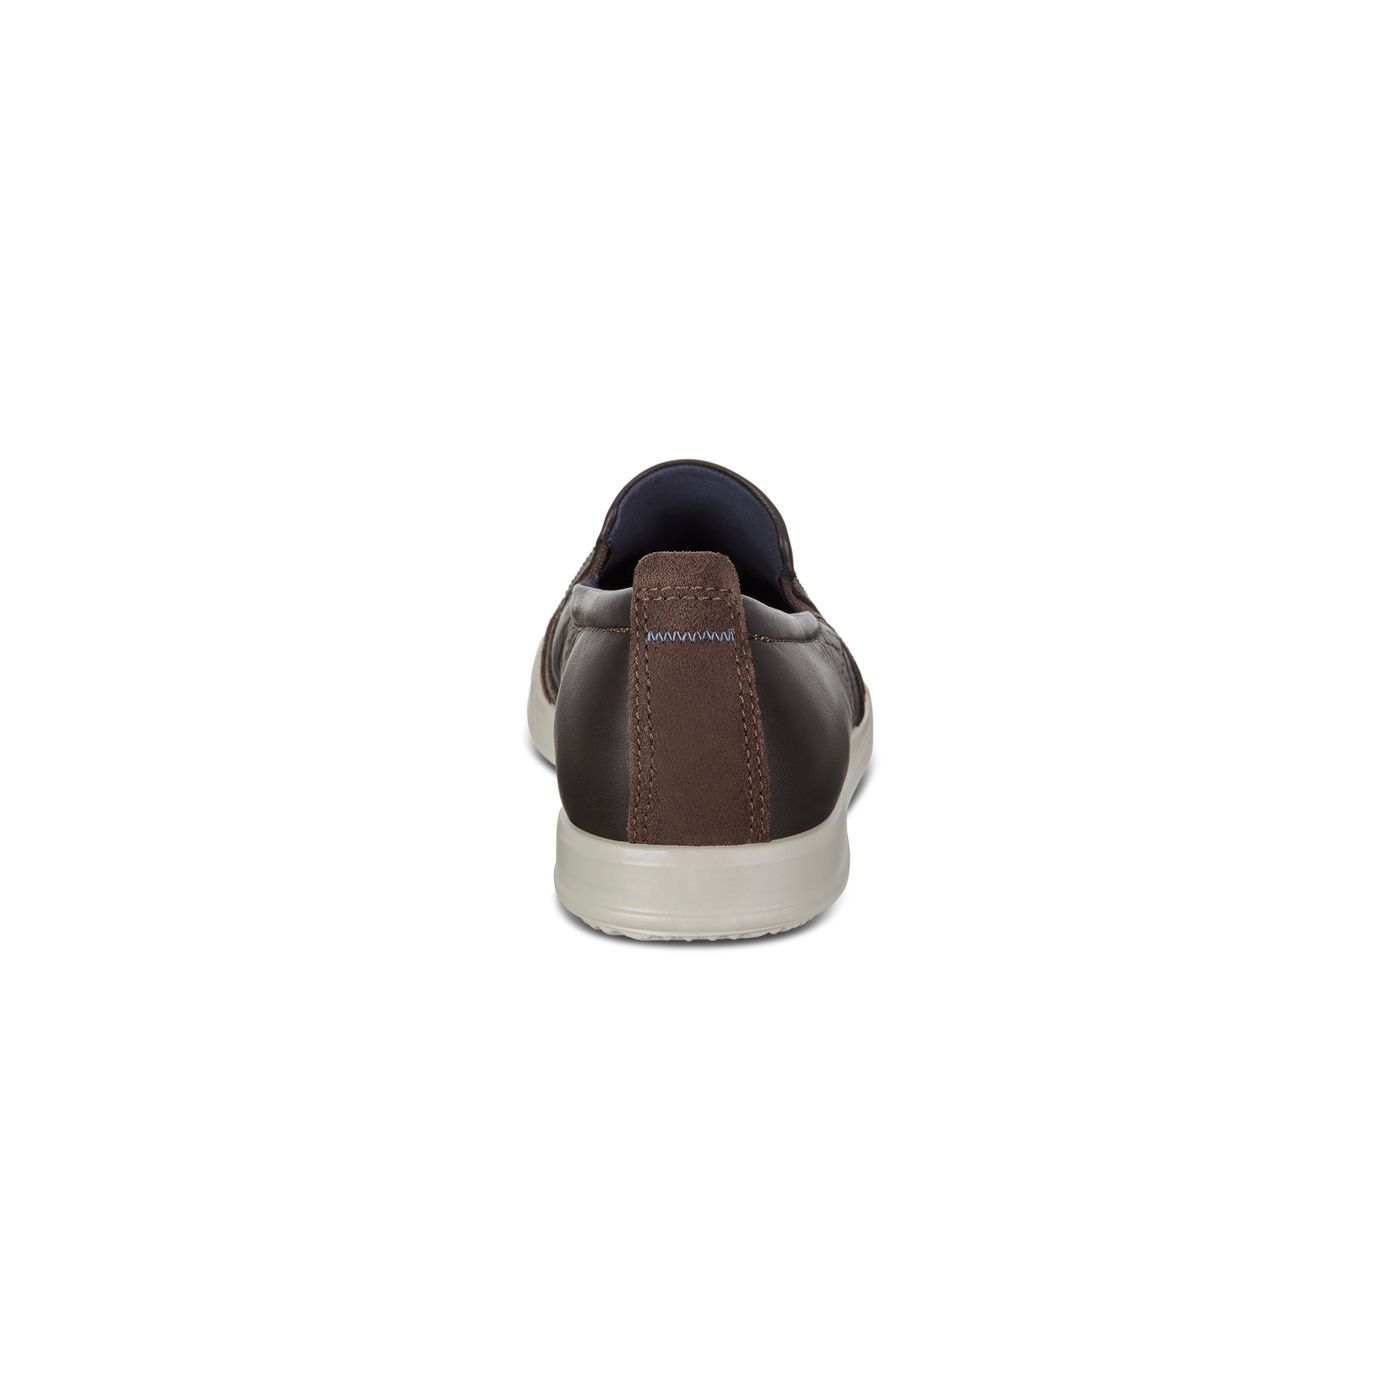 77f4c050 ECCO Collin 2.0 Men's Slip On Shoes | ECCO® Shoes in 2019 | PRODUCT ...